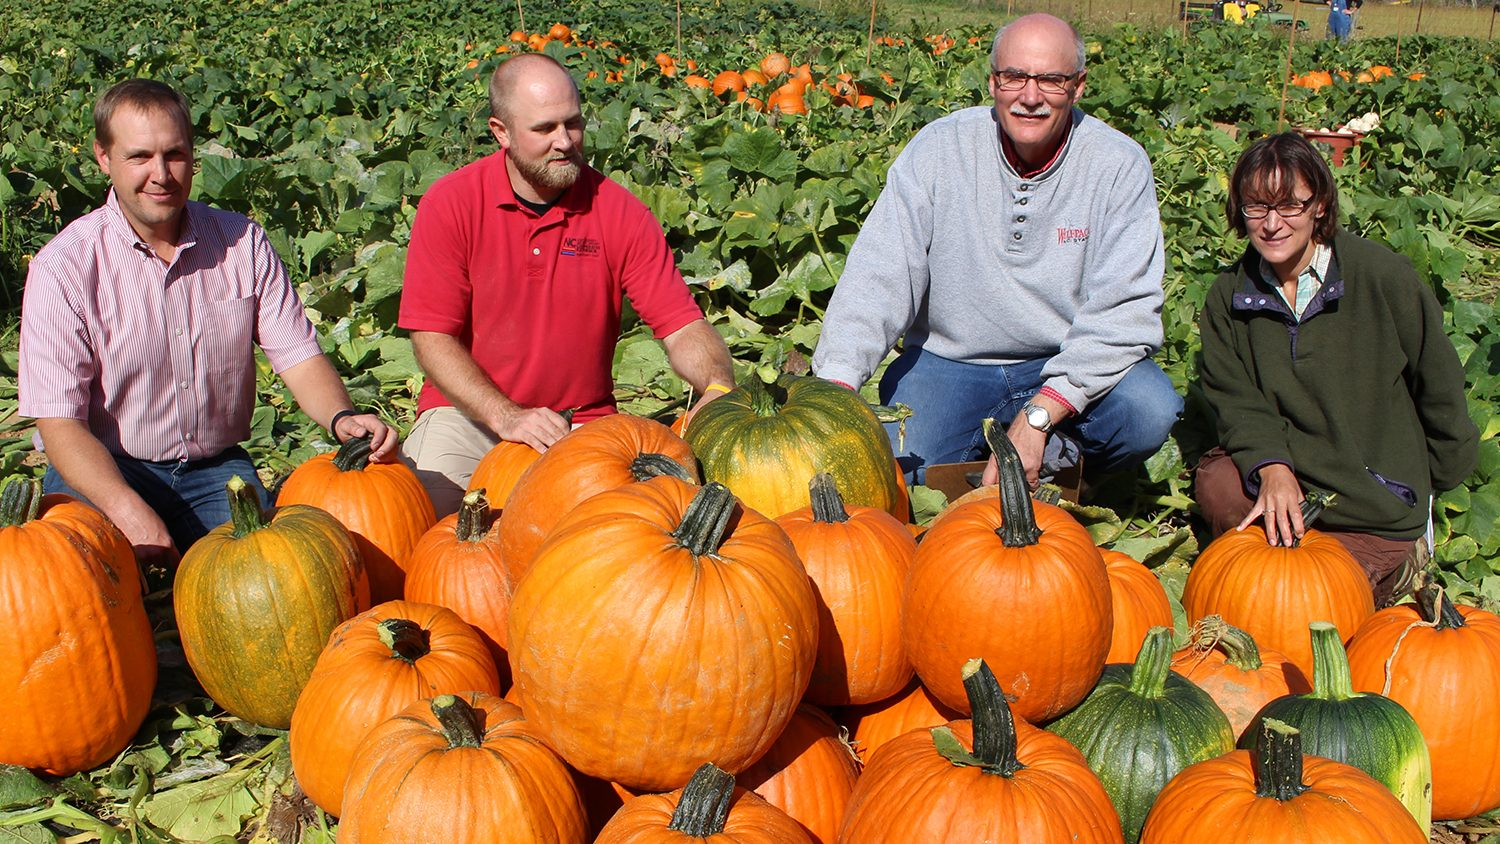 Kaleb Rathbone, Travis Birdsell, Jonathan Schultheis and Annette Wszelaki pose with pumpkins in a research station field.